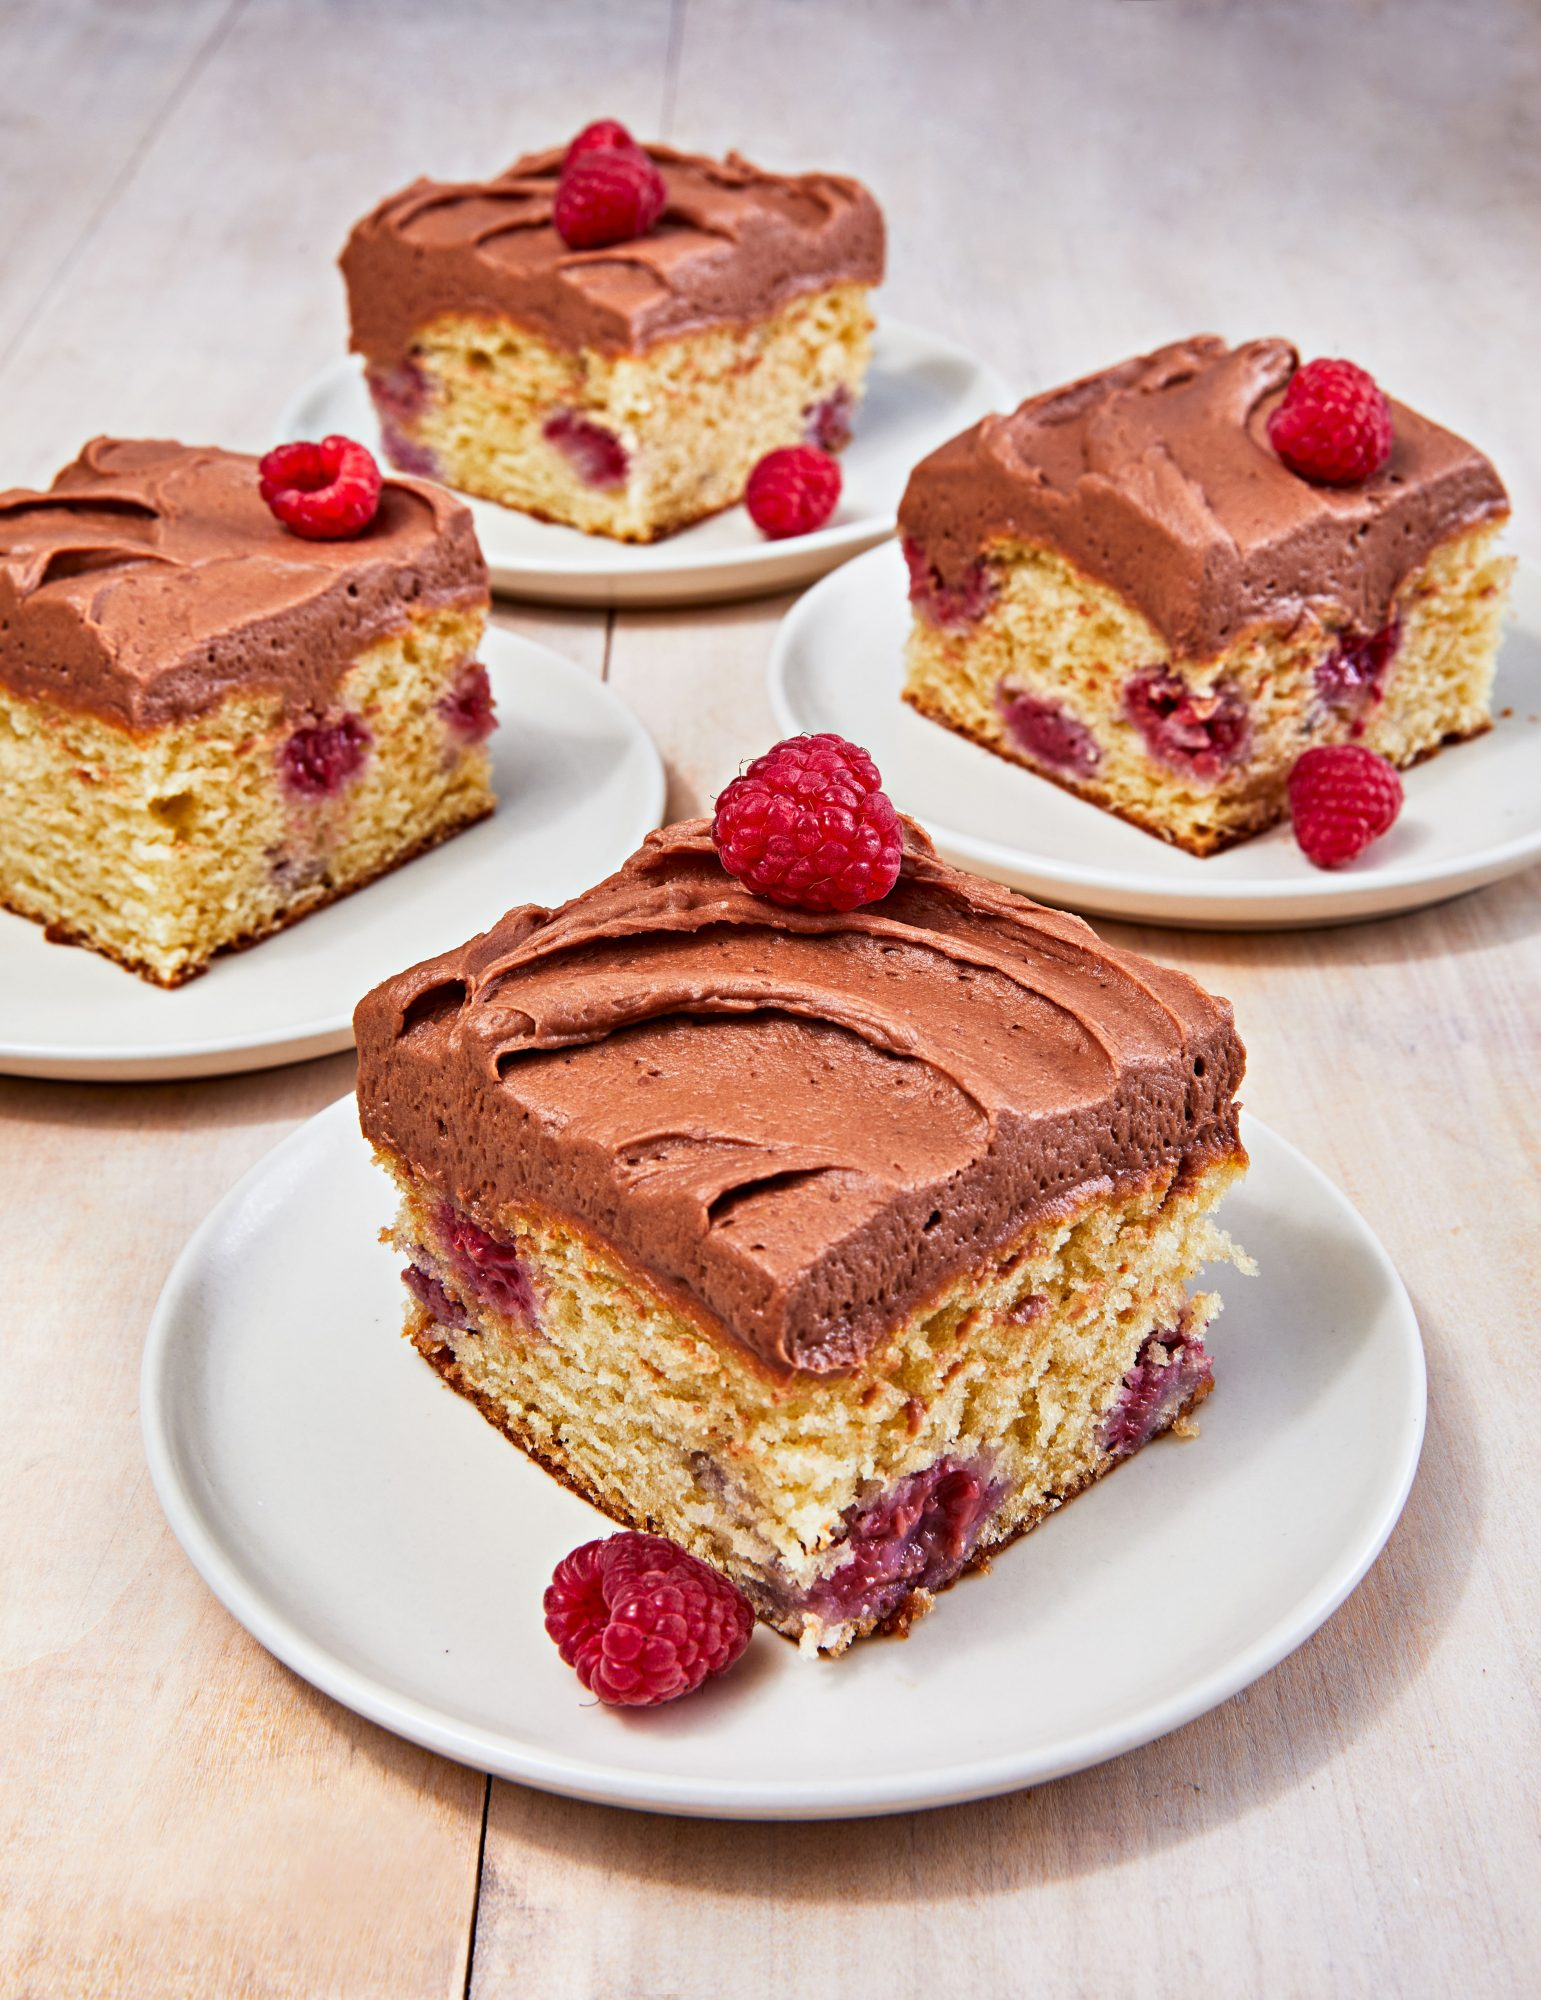 Raspberry Snack Cake with Salted Milk Chocolate Frosting